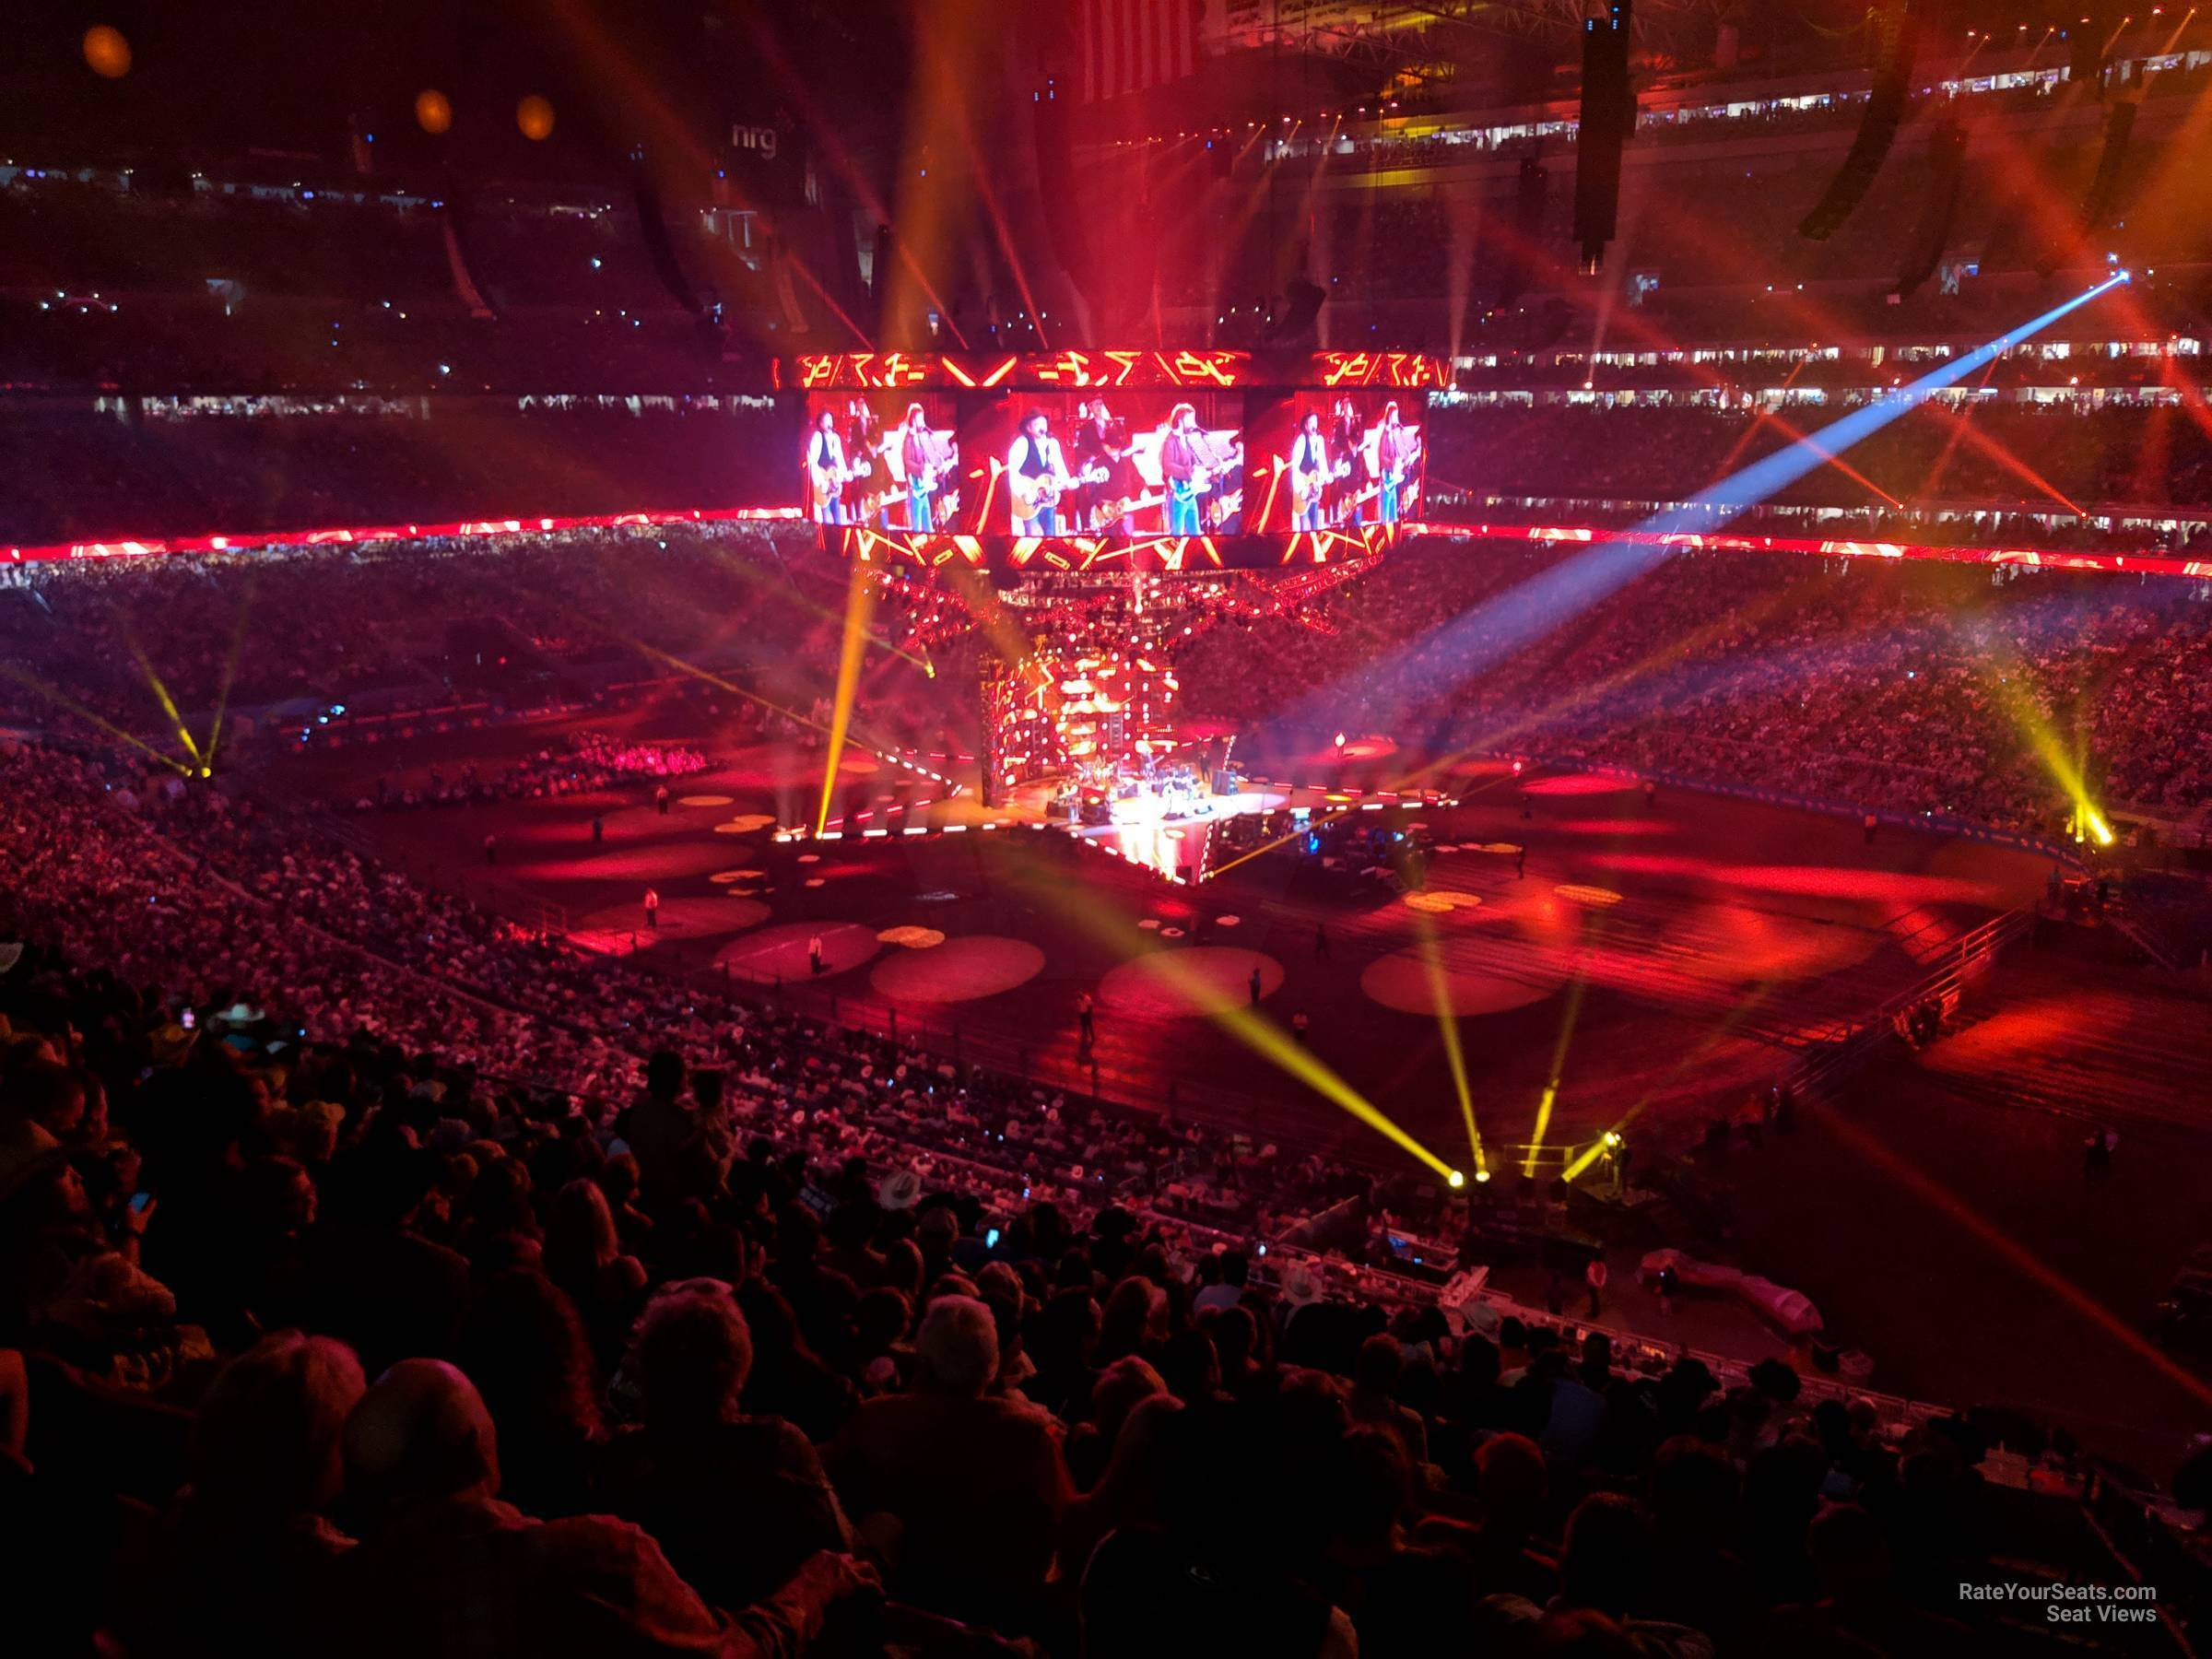 Section 304 at NRG Stadium for Concerts - RateYourSeats.com